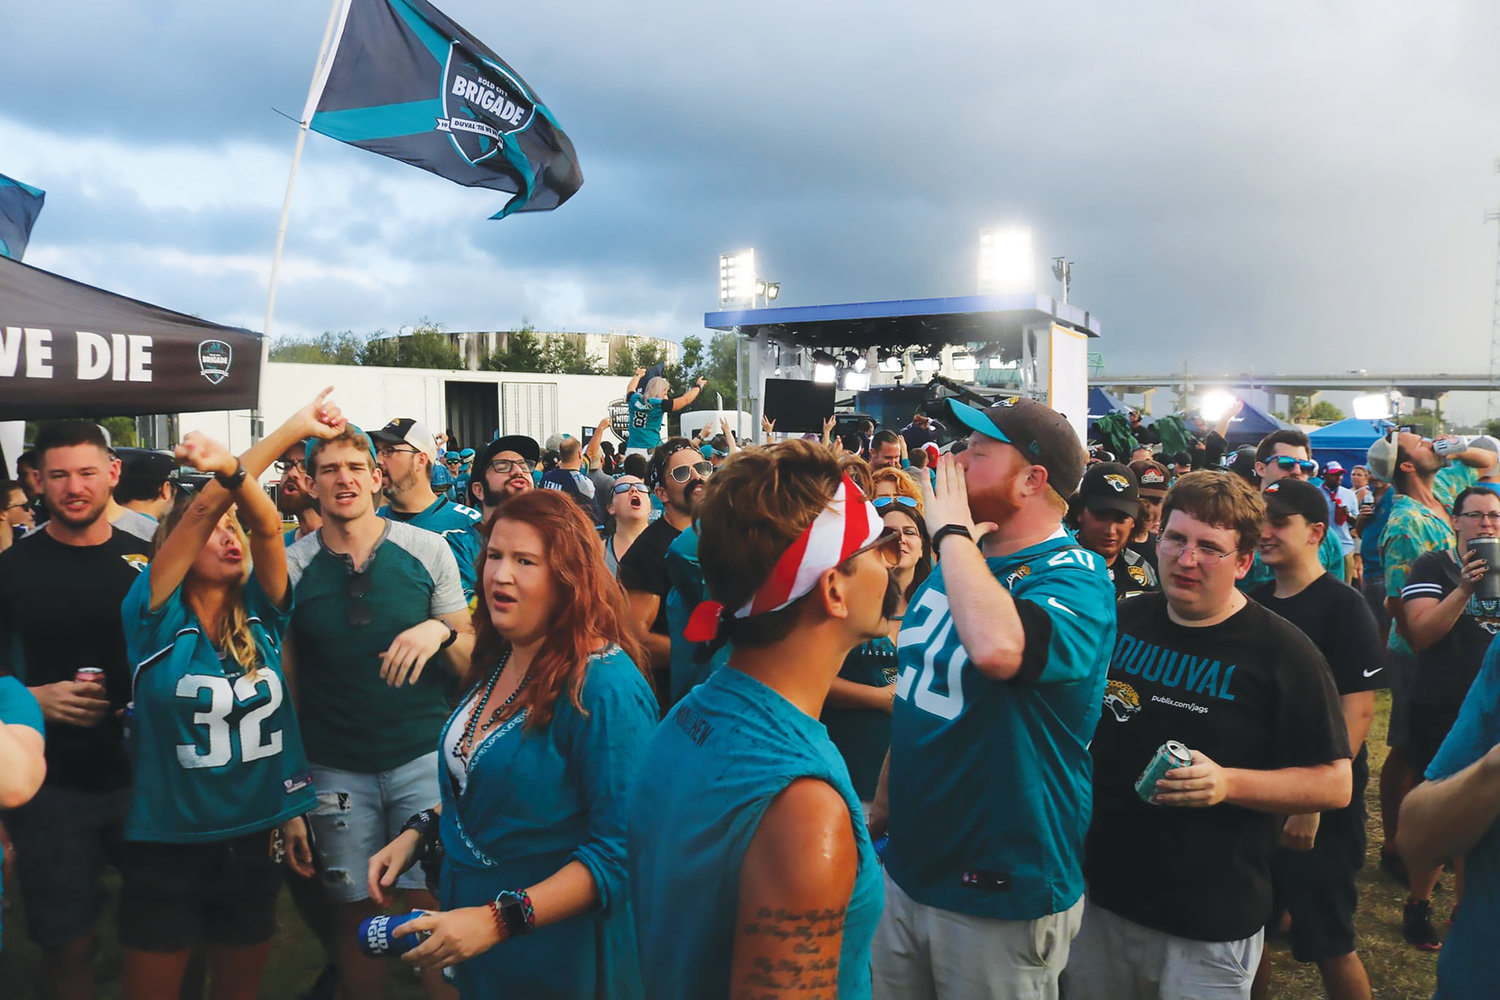 The NFL Network visited Jacksonville Jaguars fan groups, Teal Street Hooligans and Bold City Brigade, at 'The Slab,' Sept. 19, for the Thursday night Jaguars game against the Tennessee Titans, resulting in a 20-7 victory.